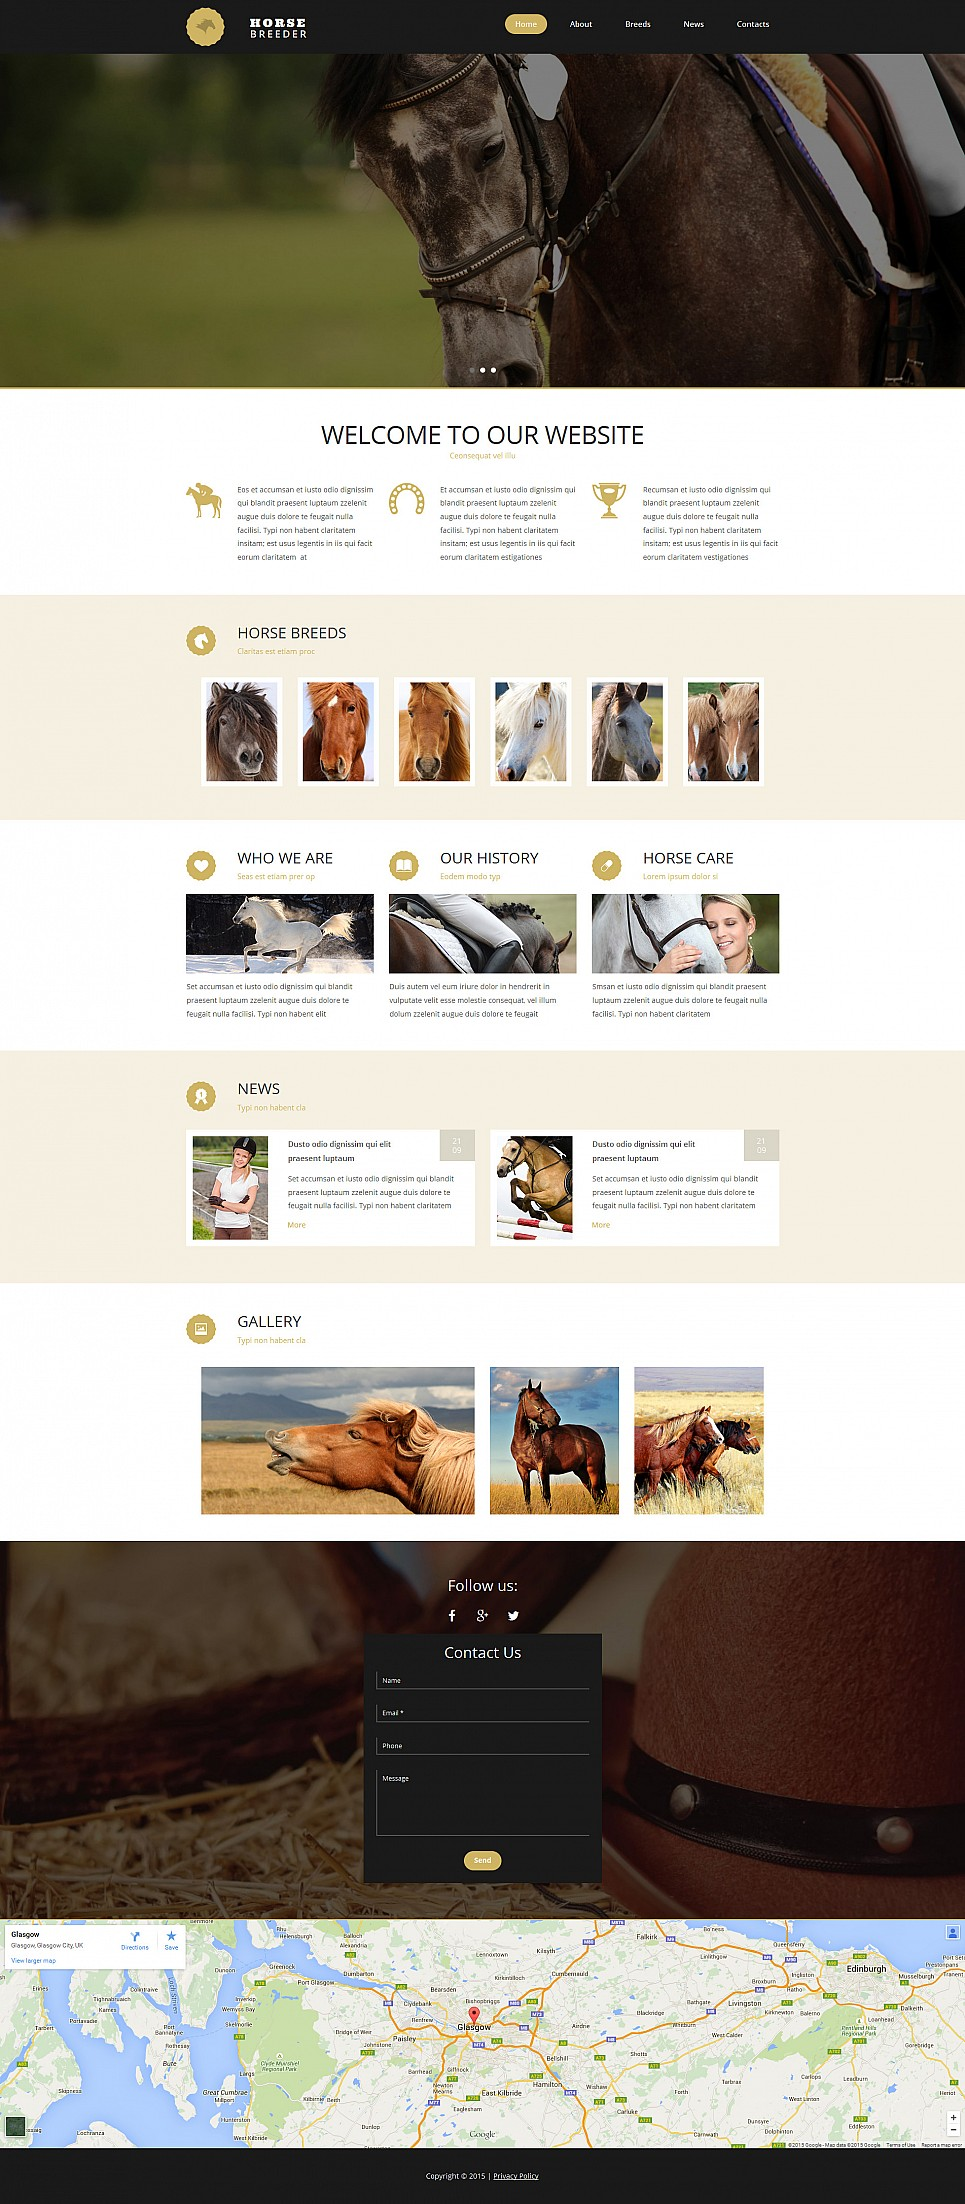 Website Template for Horse Breeding Farm - image